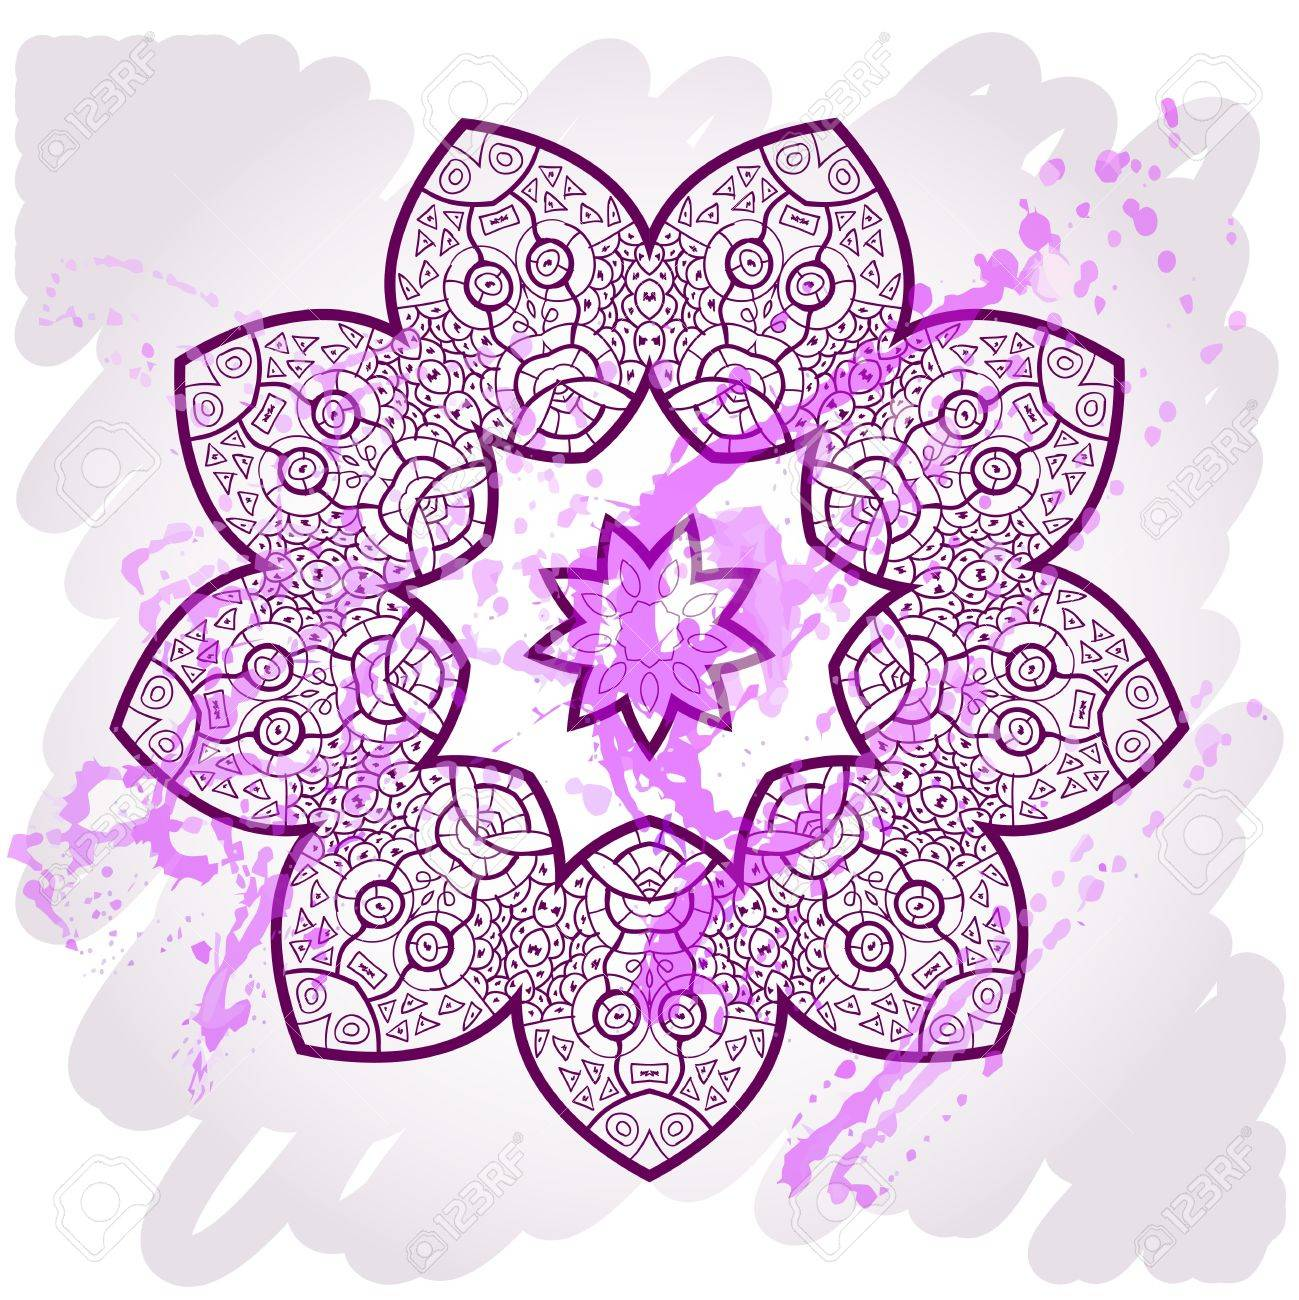 What is karma? Oriental mandala motif round lase pattern on the violet background, like snowflake or mehndi paint of deep pink color Stock Vector - 18921845